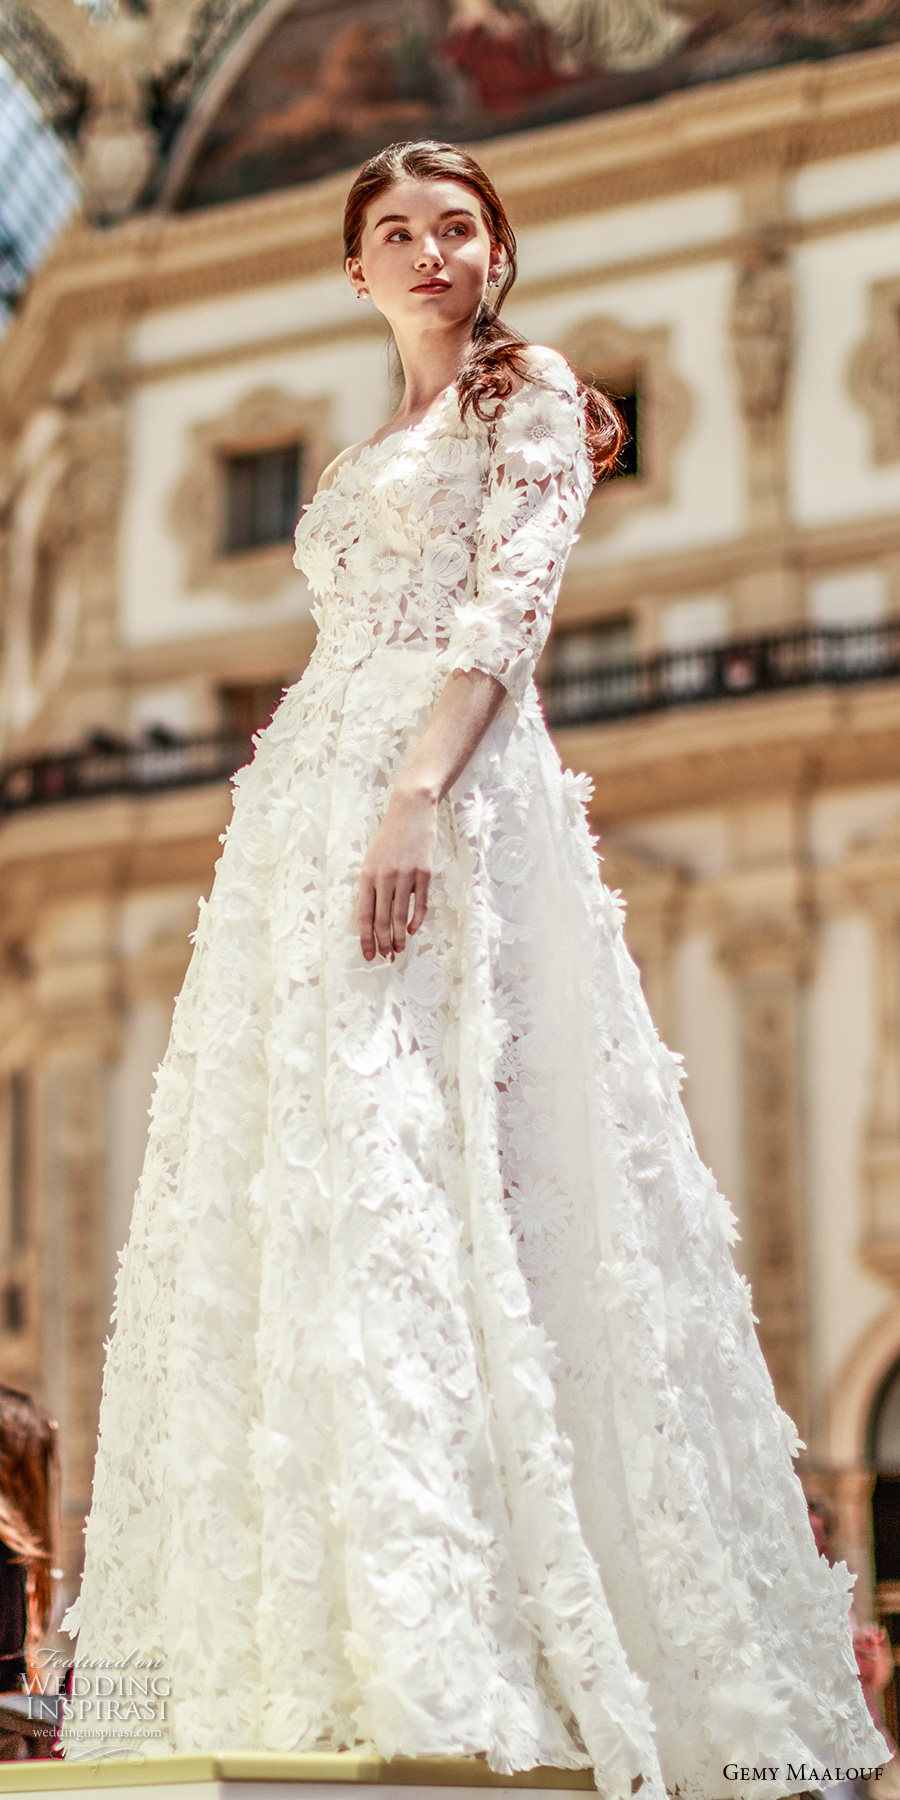 gemy maalouf 2017 bridal three quarter sleeves off the shoulder straight across neck full embellishment romantic princess a line wedding dress sweep train (w17 4871) sdv